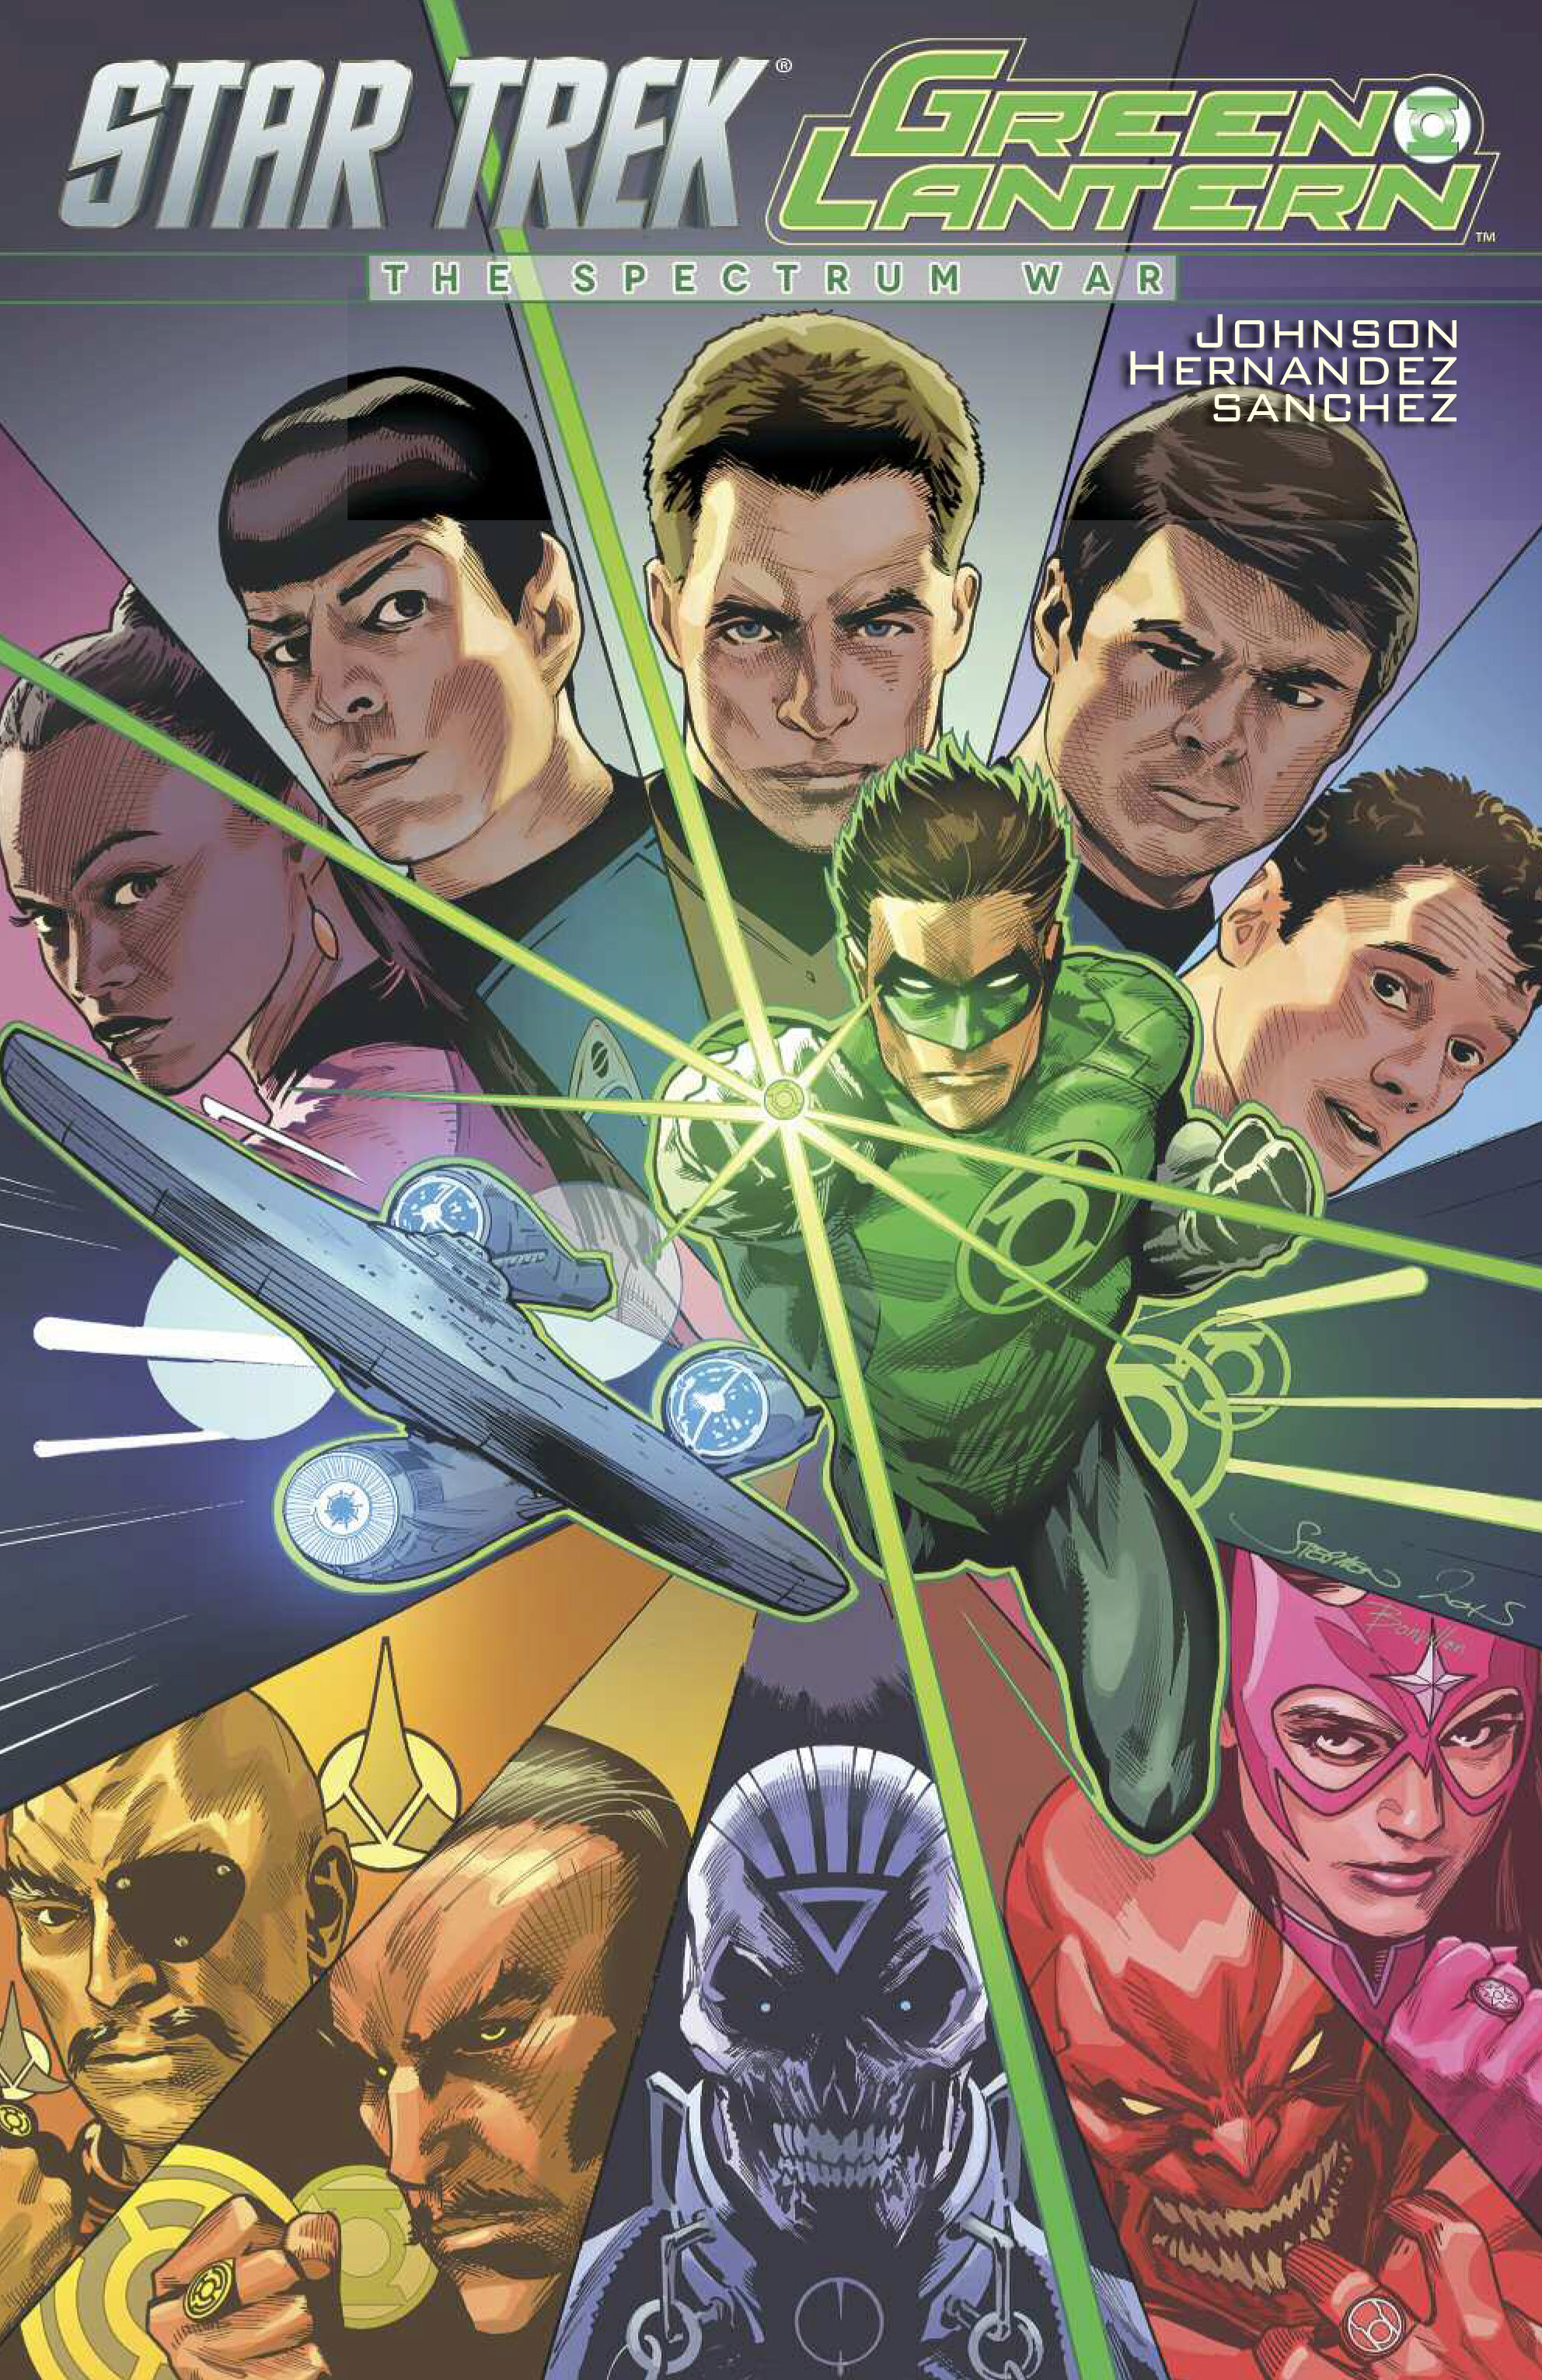 STAR TREK GREEN LANTERN TP SPECTRUM WAR